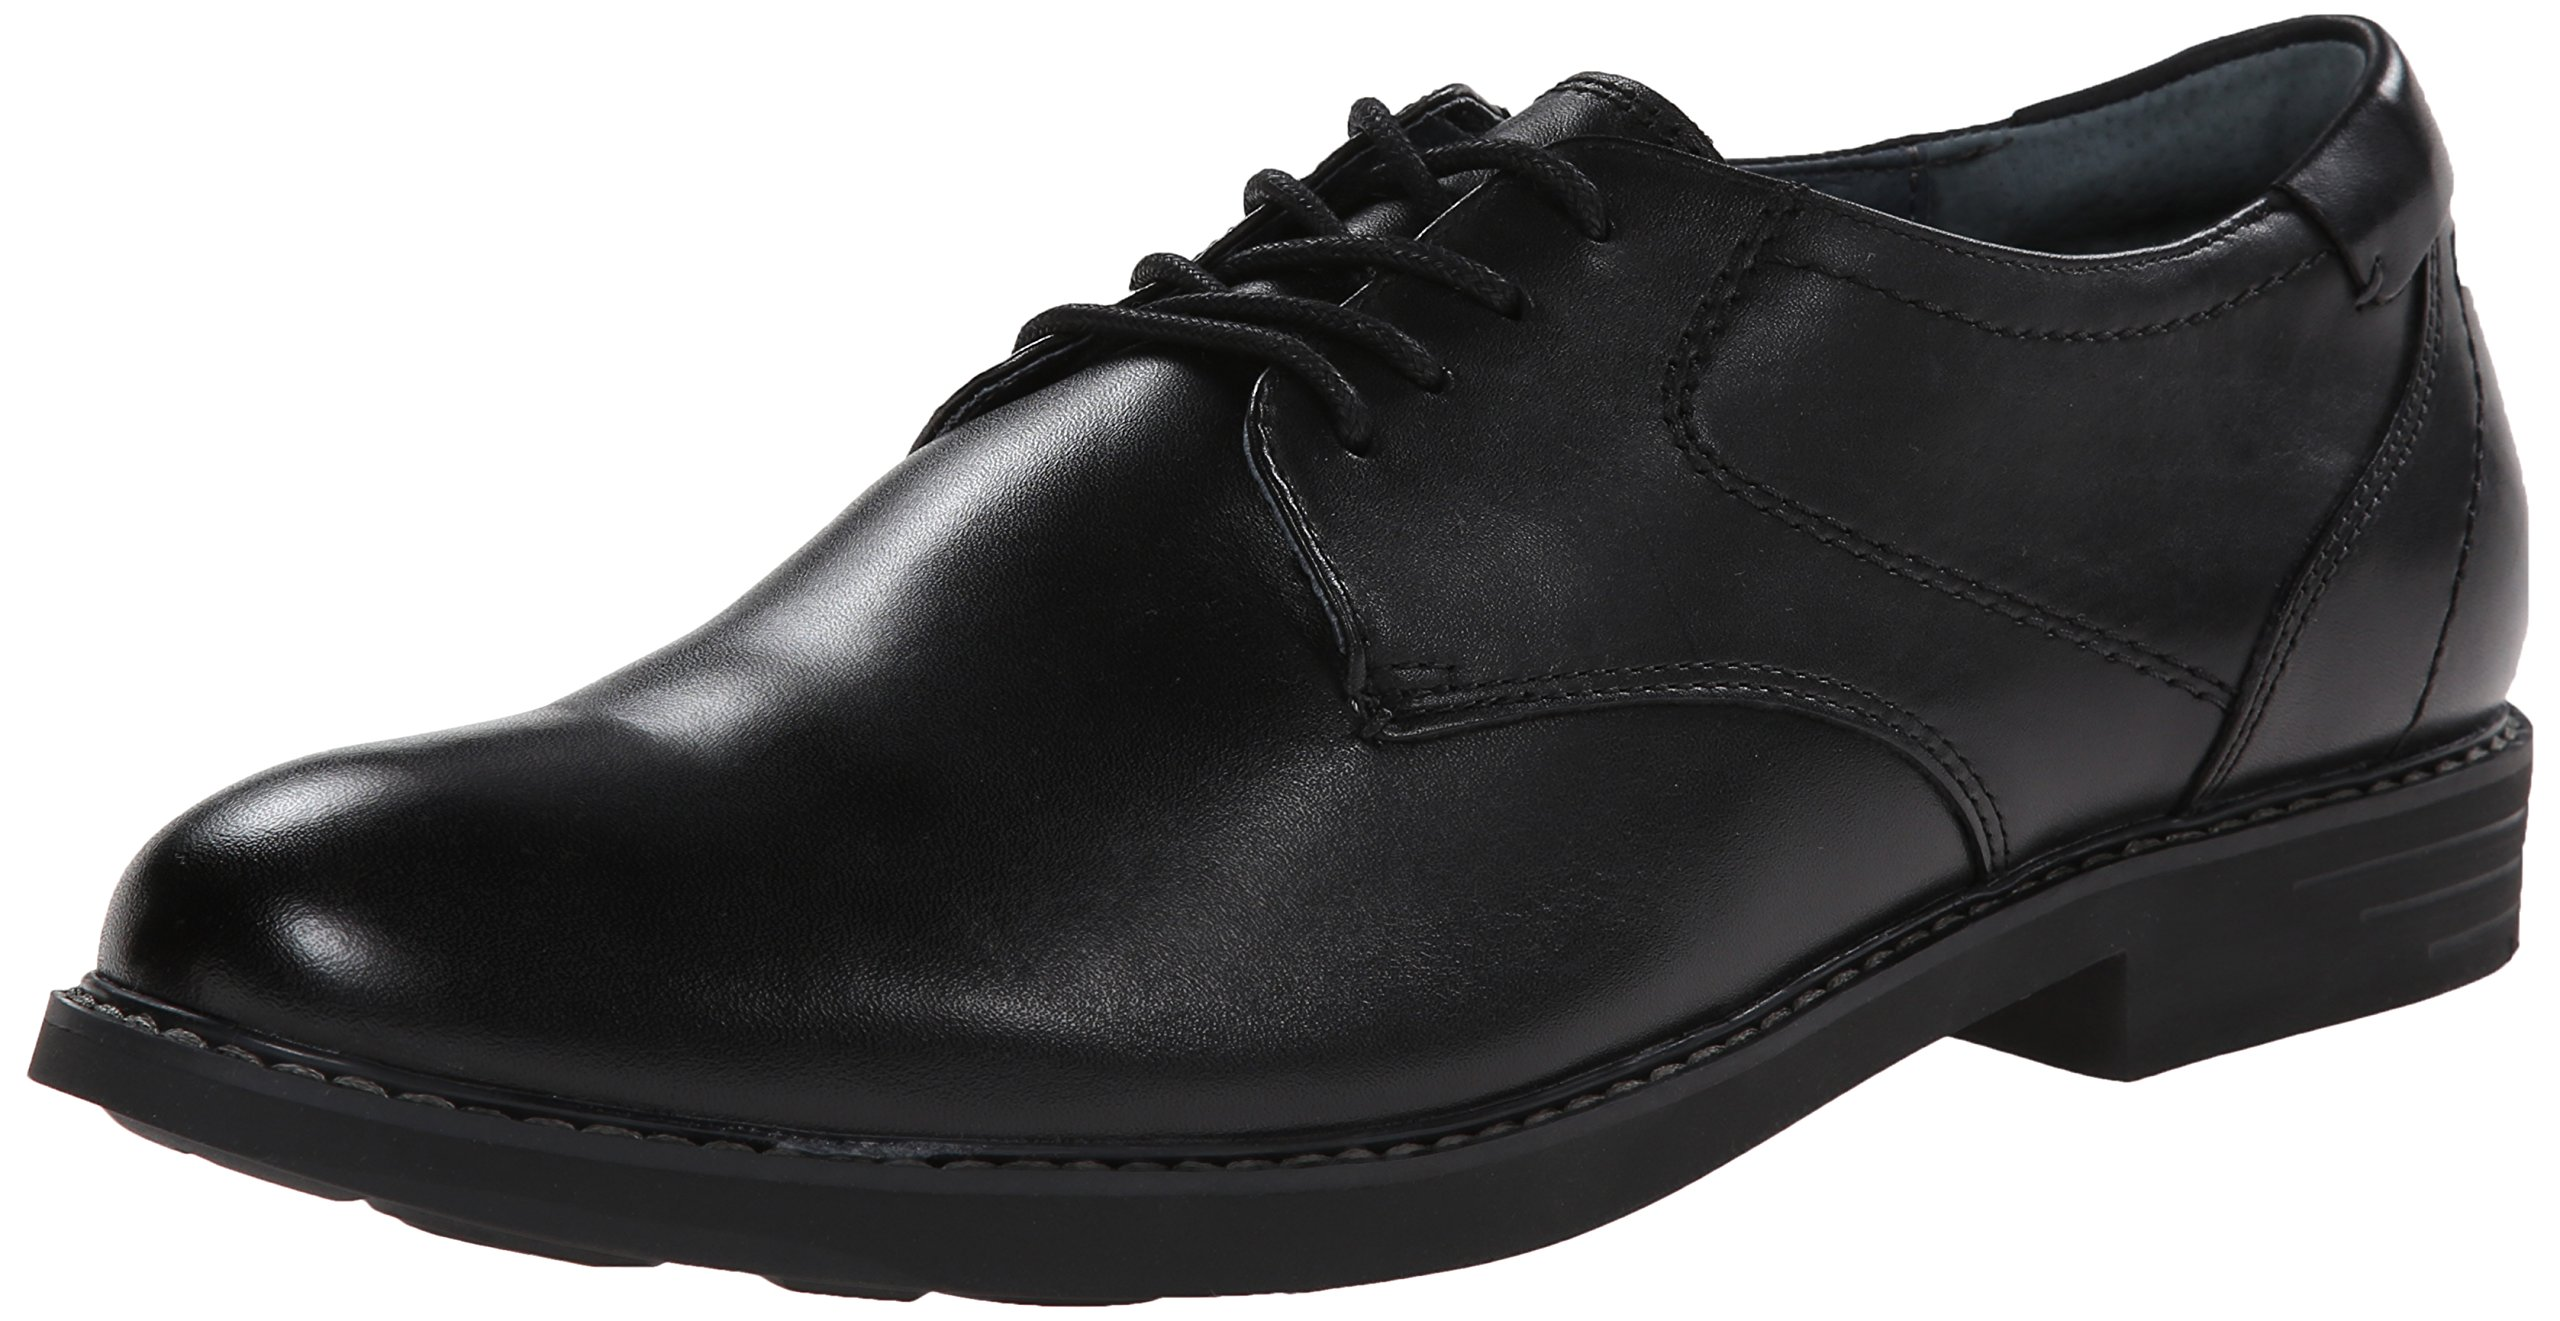 Jambu Men's New York Hyper Grip Oxford, Black, 9 M US by Jambu